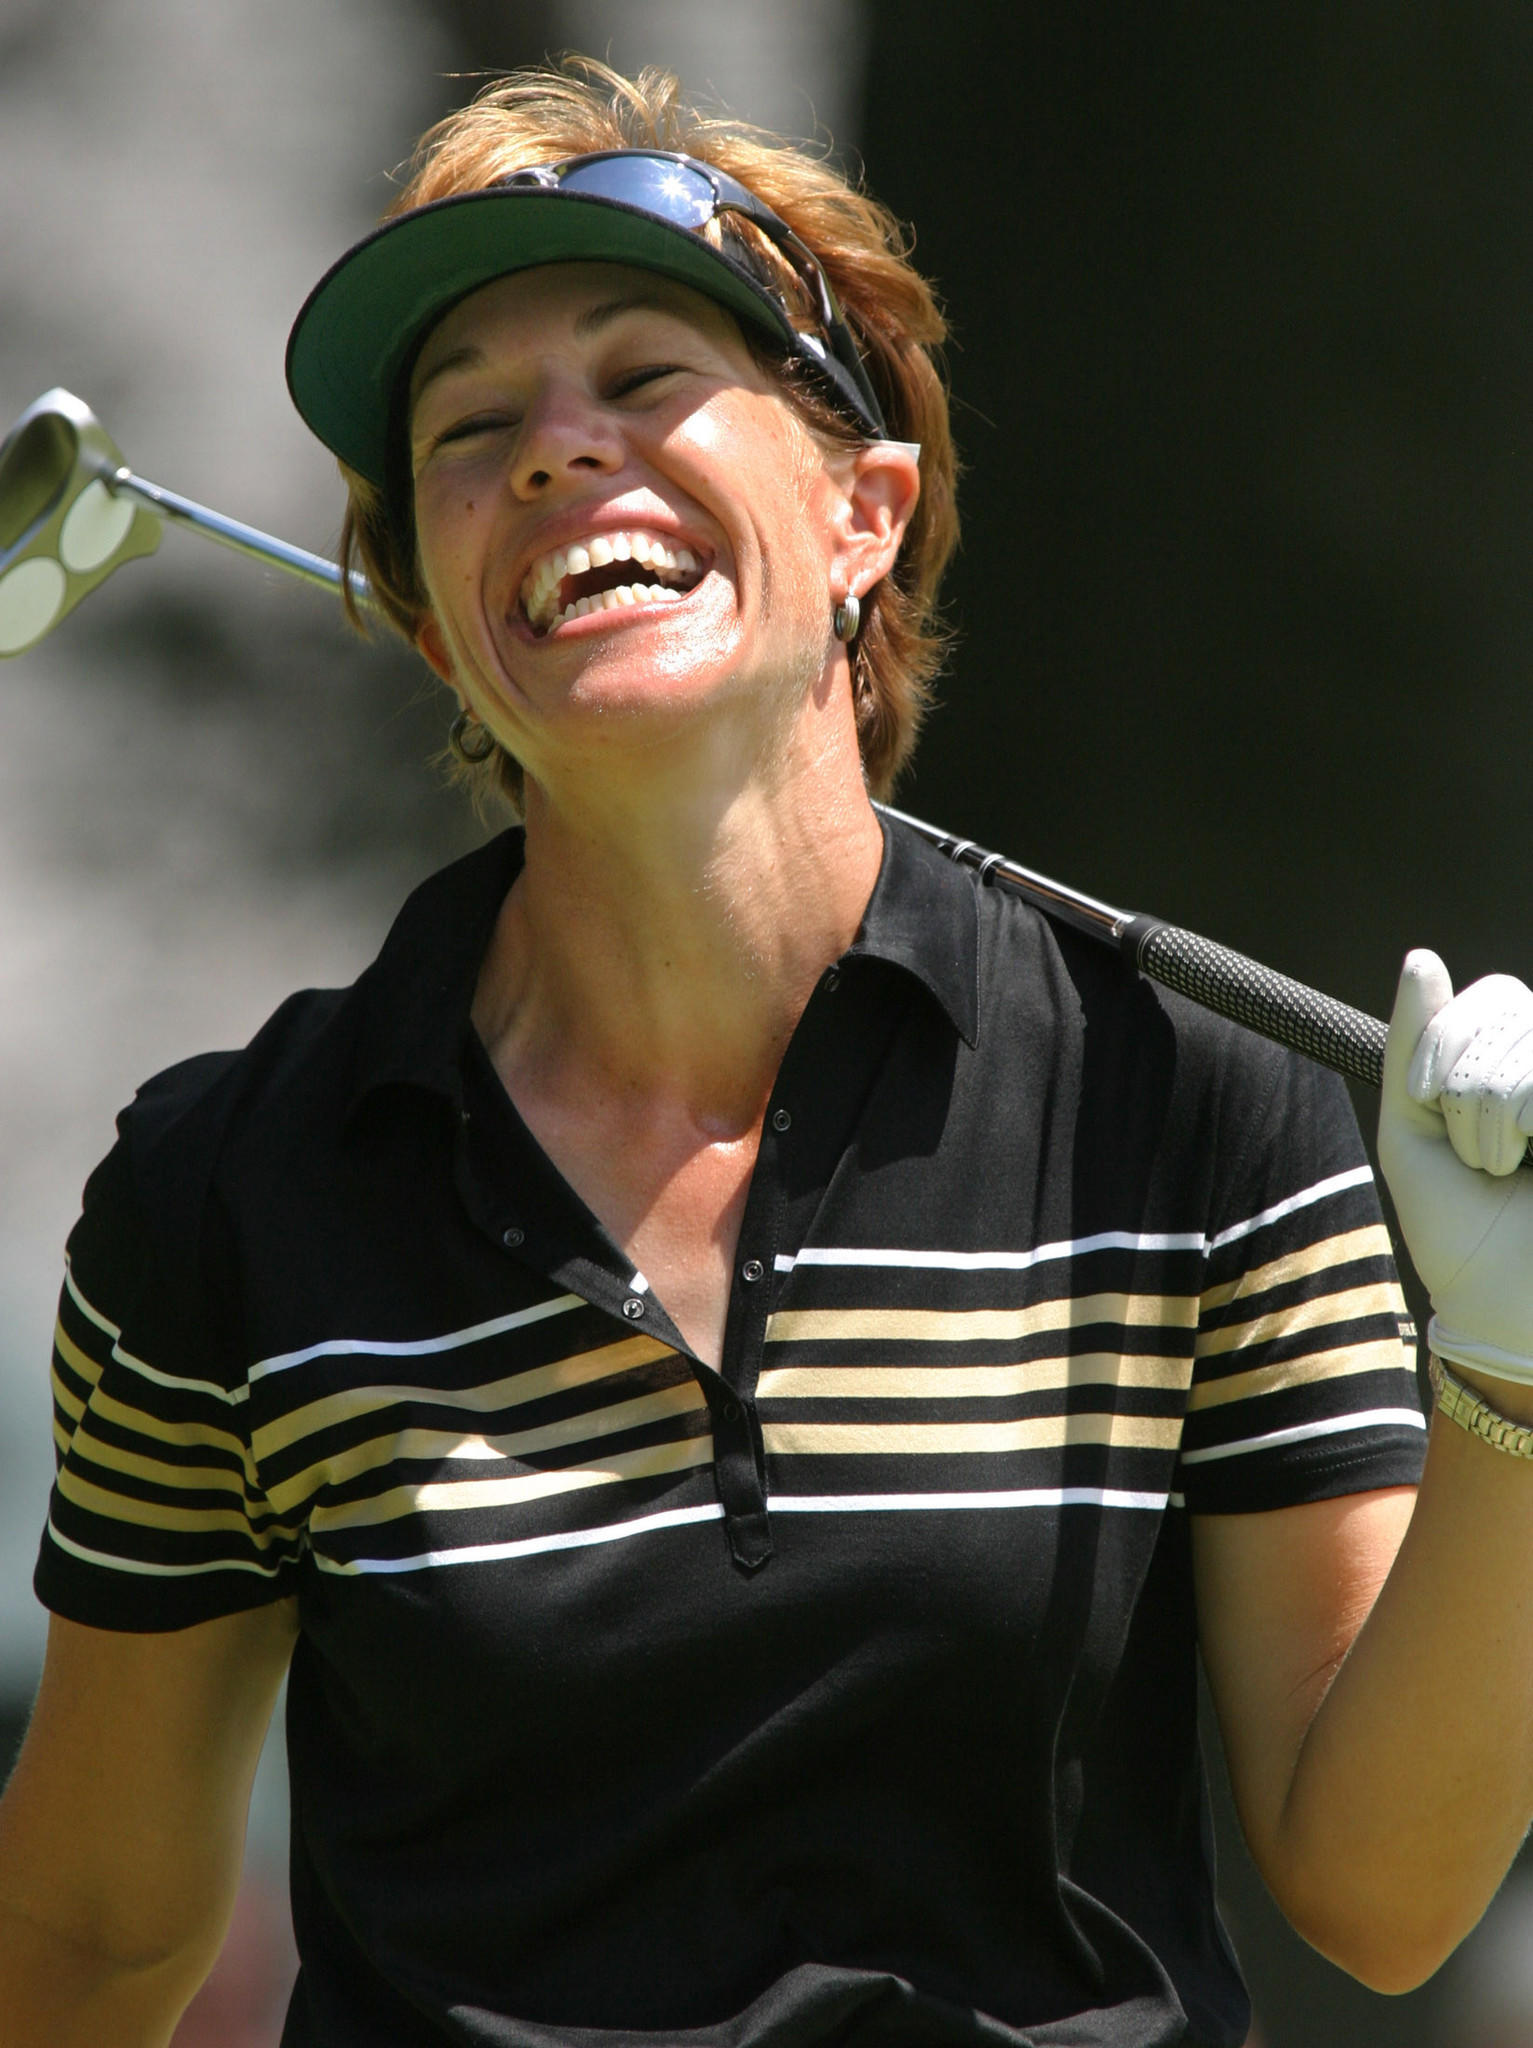 Suzy Whaley shares a laugh with her playing partners on her second and final day of competition at the Greater Hartford Open, July 25, 2003 in Cromwell, Connecticut. Whaley failed to qualify for continued competition after shooting rounds of 75 and 78 for a combined score of 13-over-par for the two days. REUTERS/Jim Bourg ORG XMIT: CRW13Dz